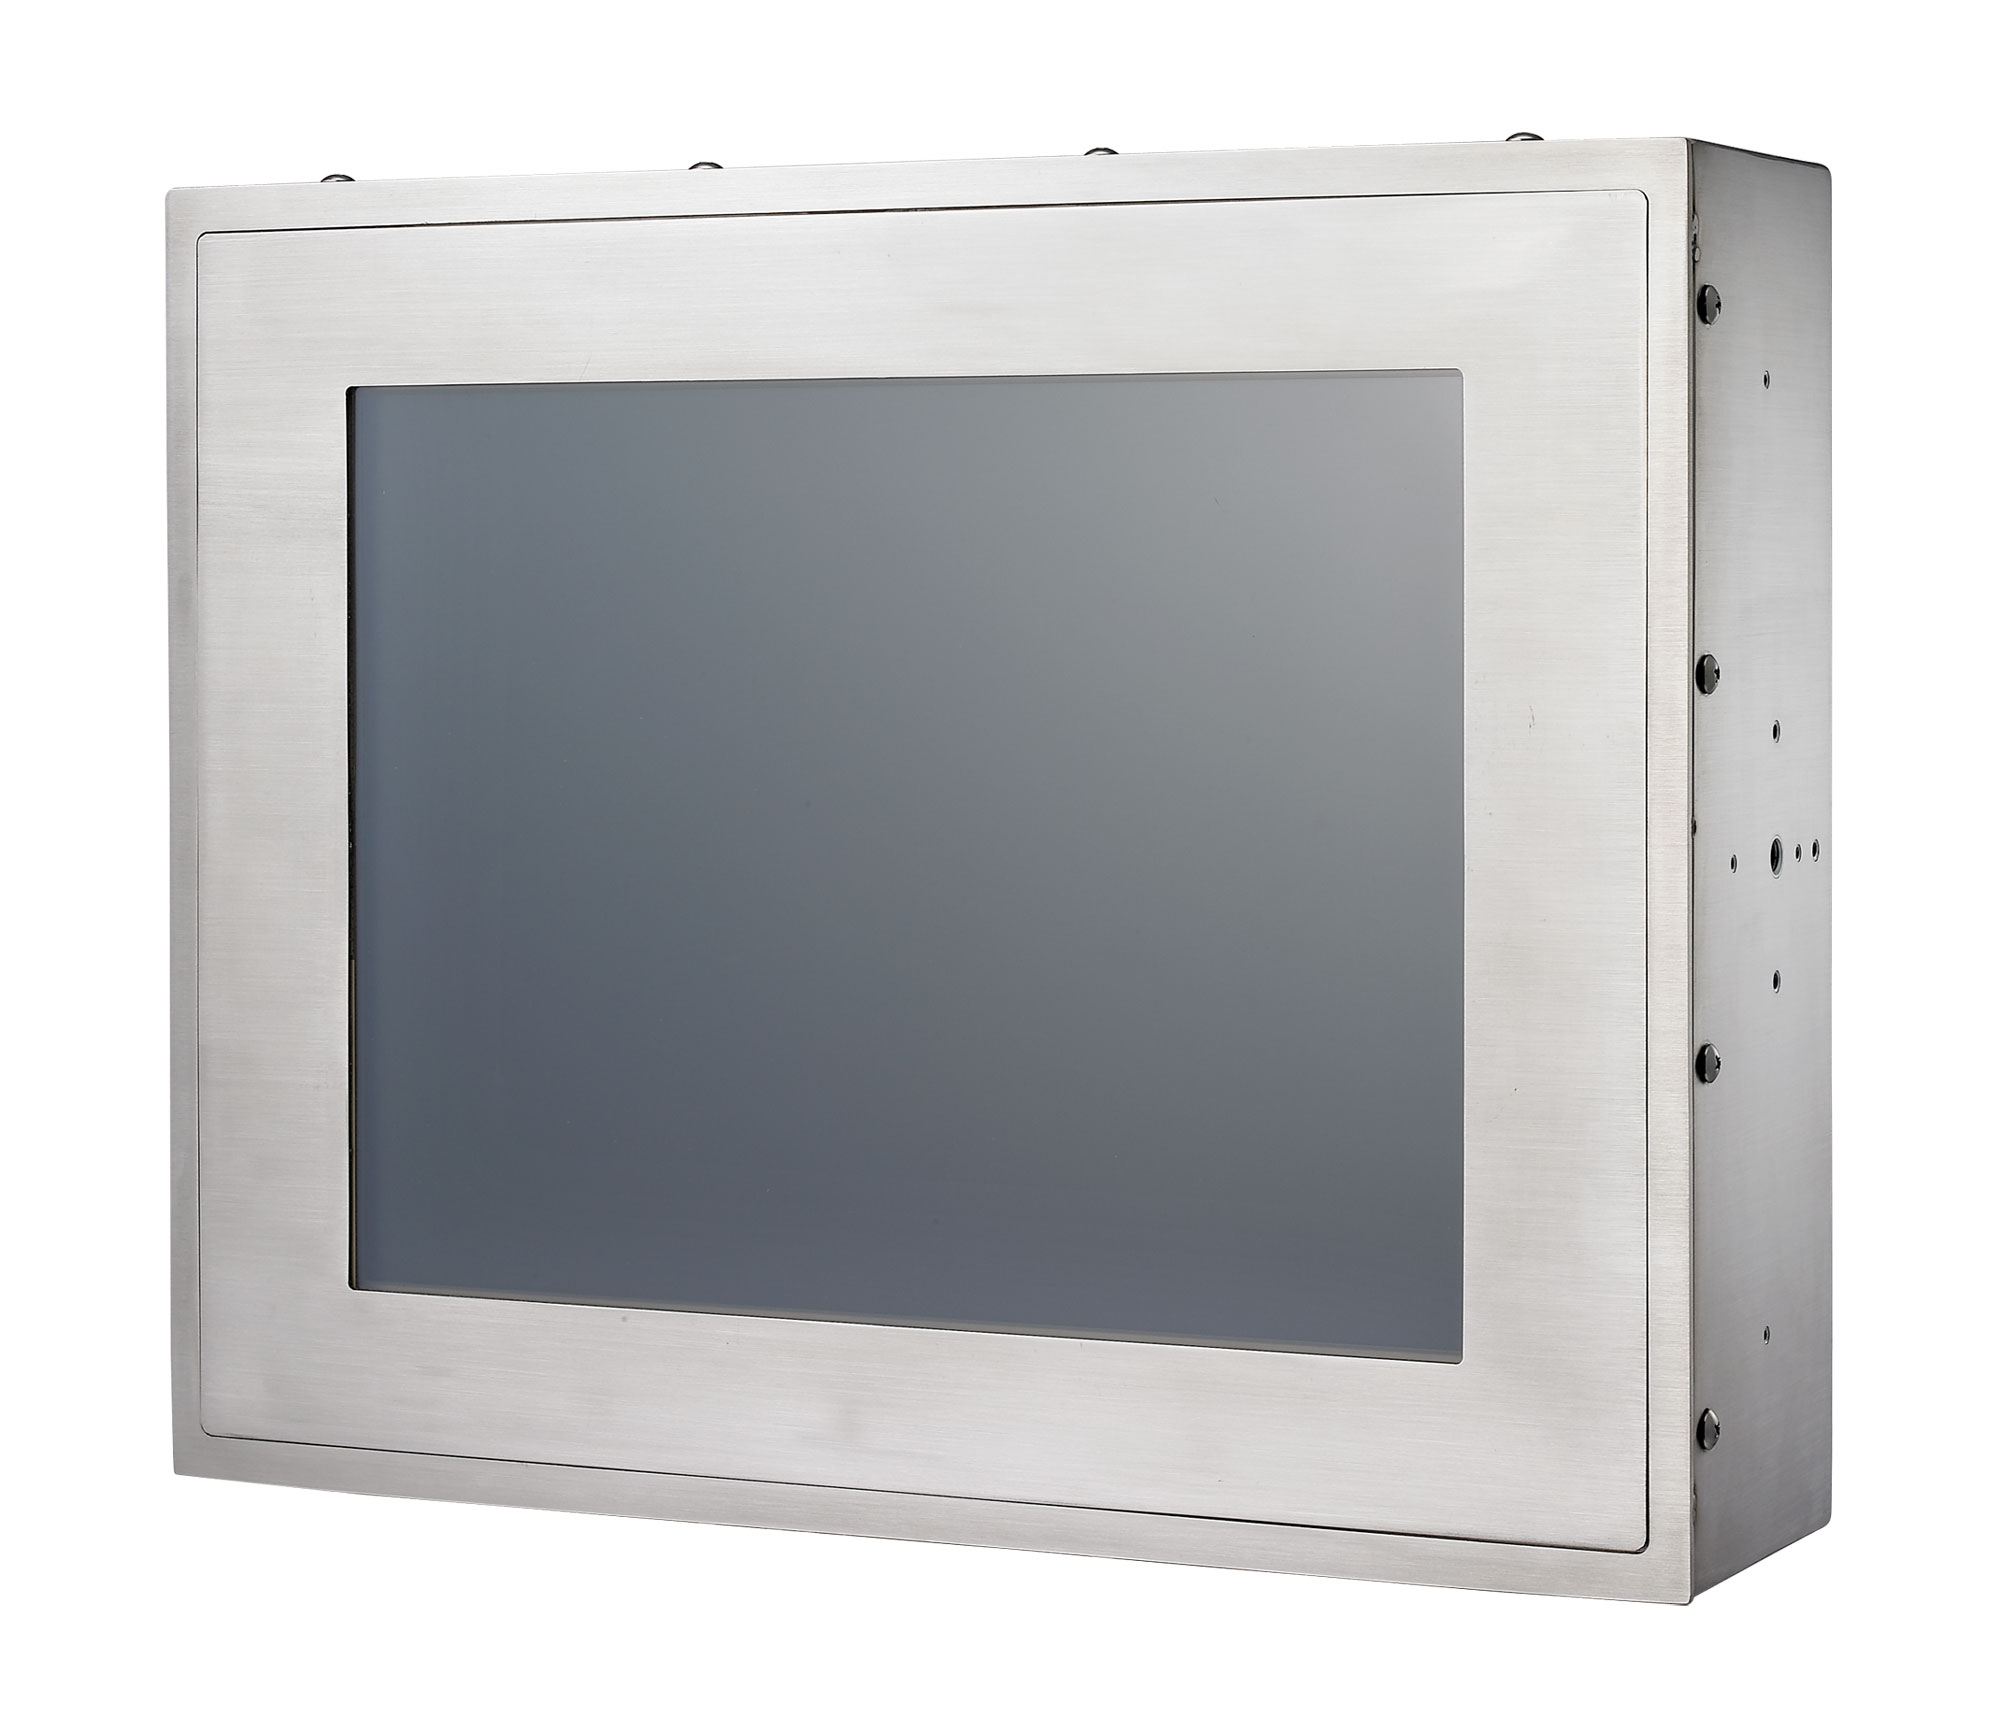 IP66 Fanless Industrial Panel PC with a 316L Stainless Steel front panel / Advantech Co., Ltd.